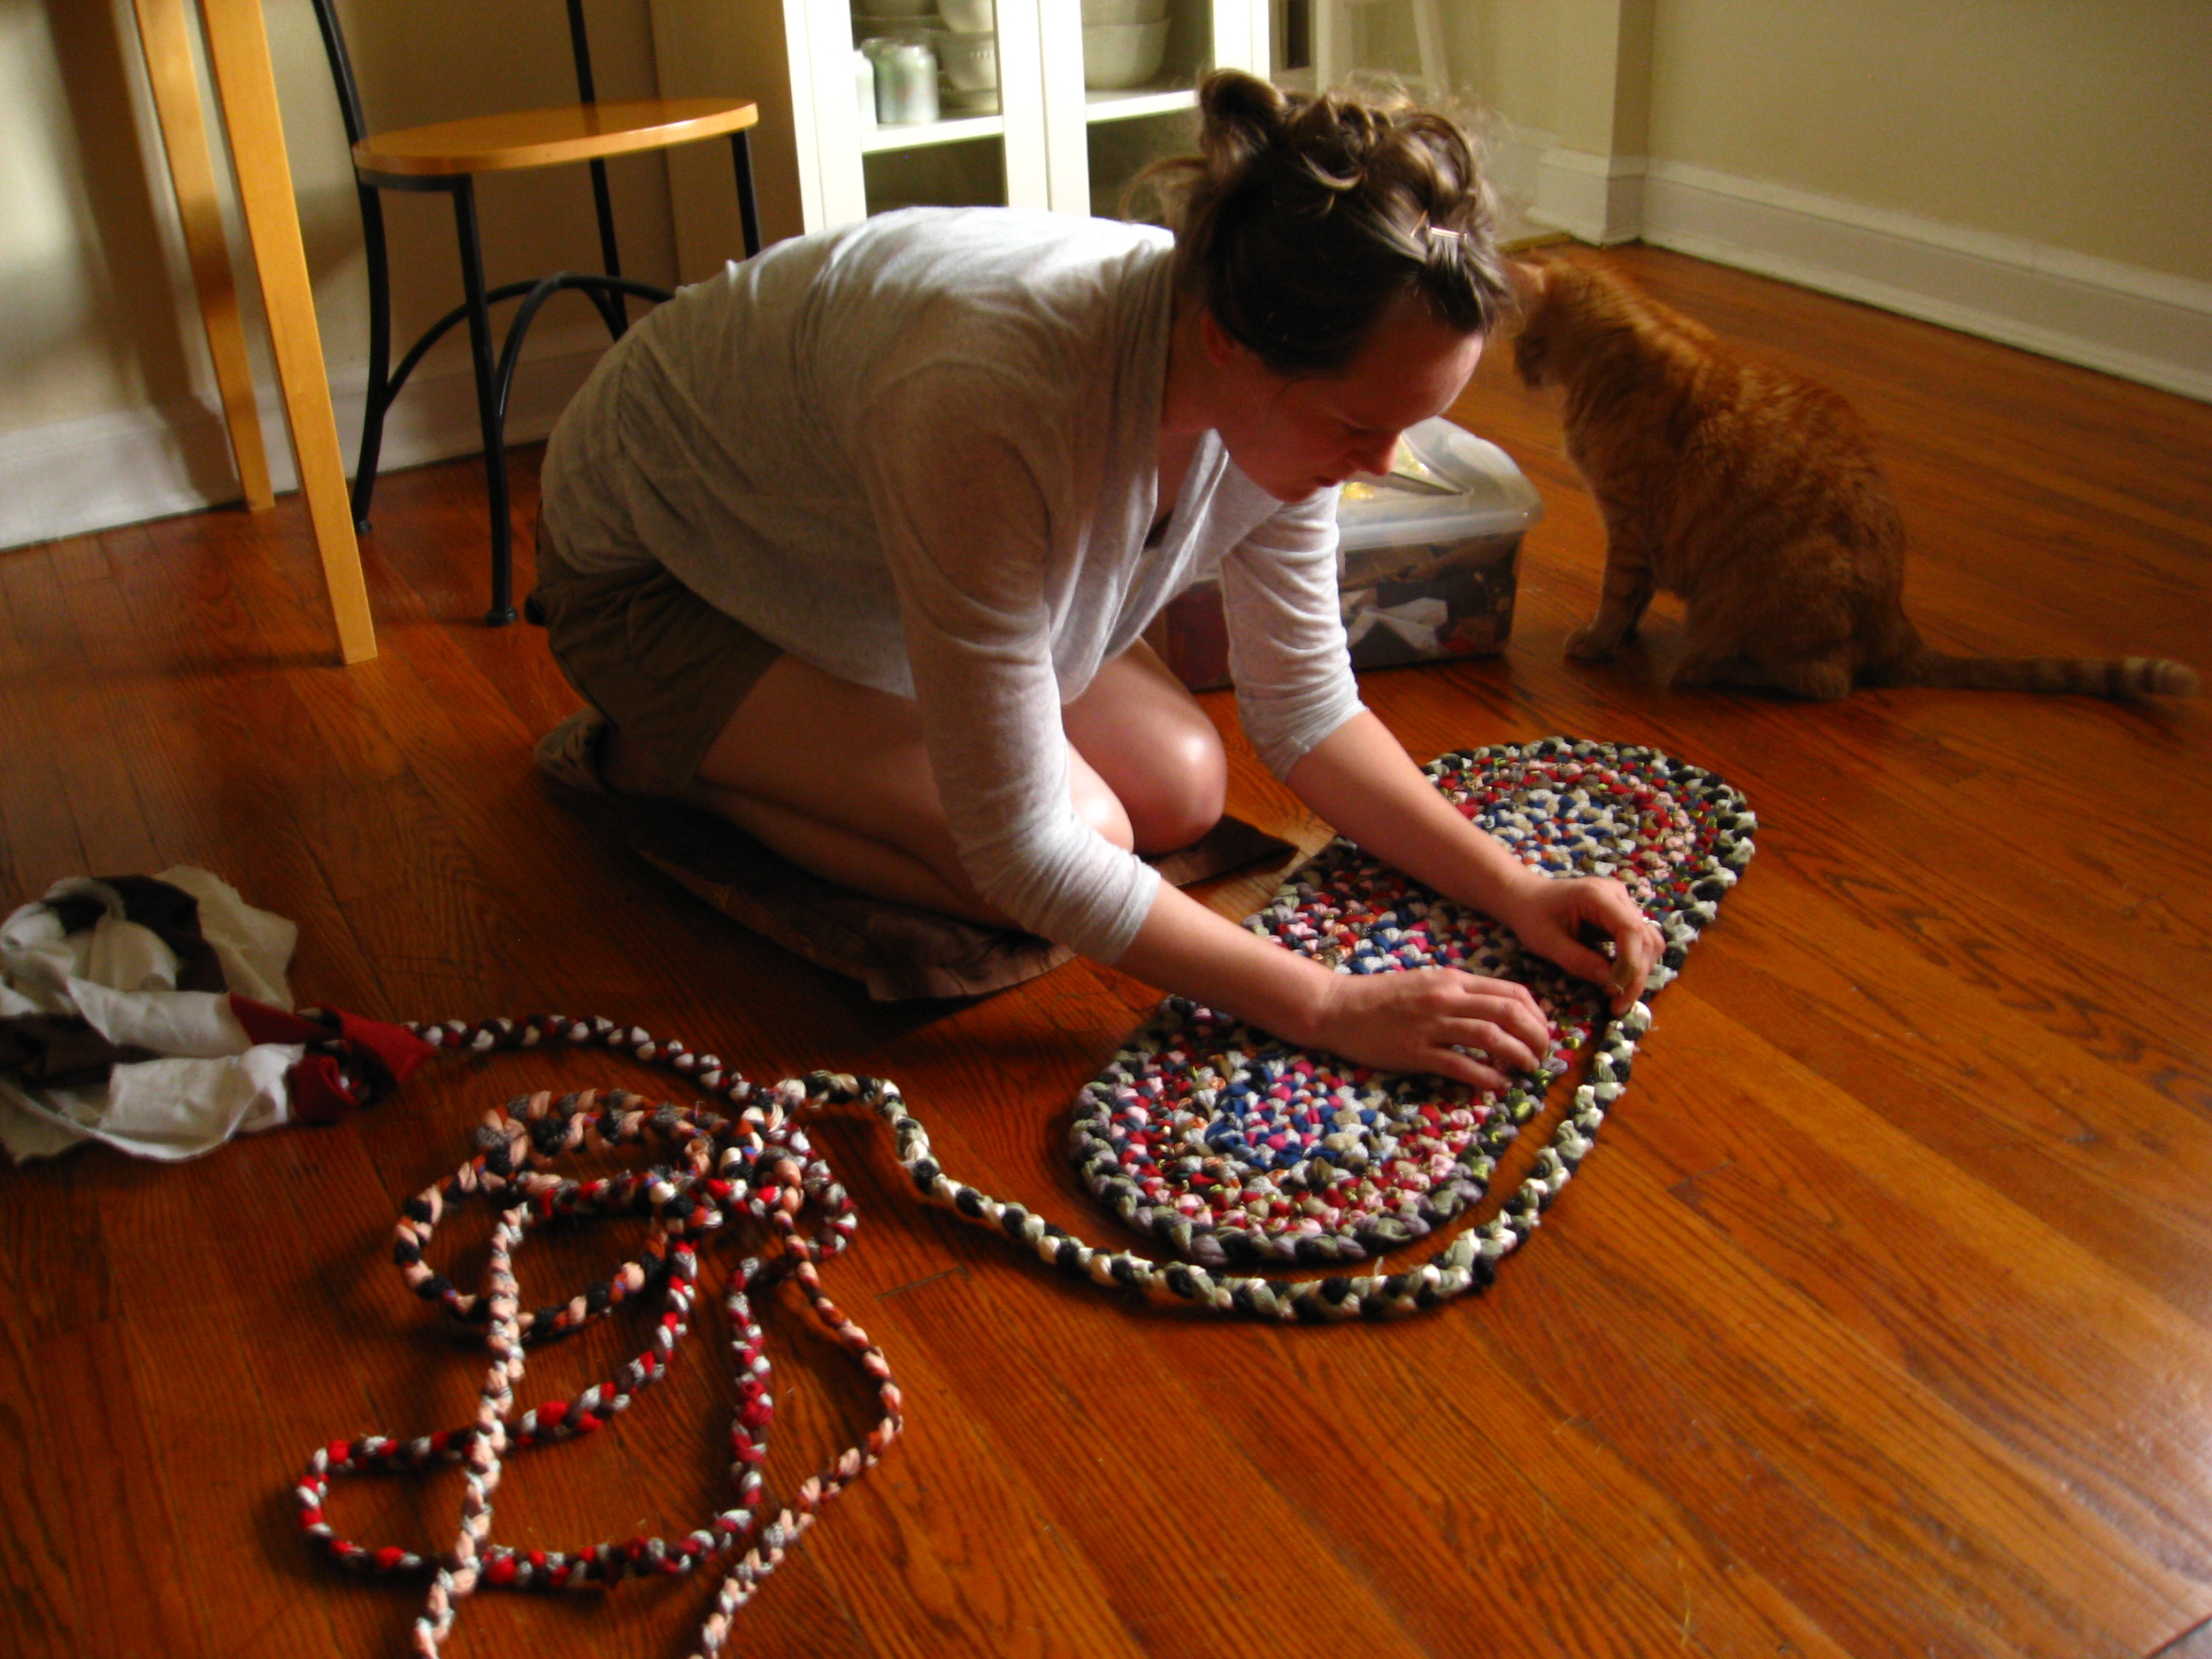 File:Making A Braided Rug.jpg - Wikimedia Commons